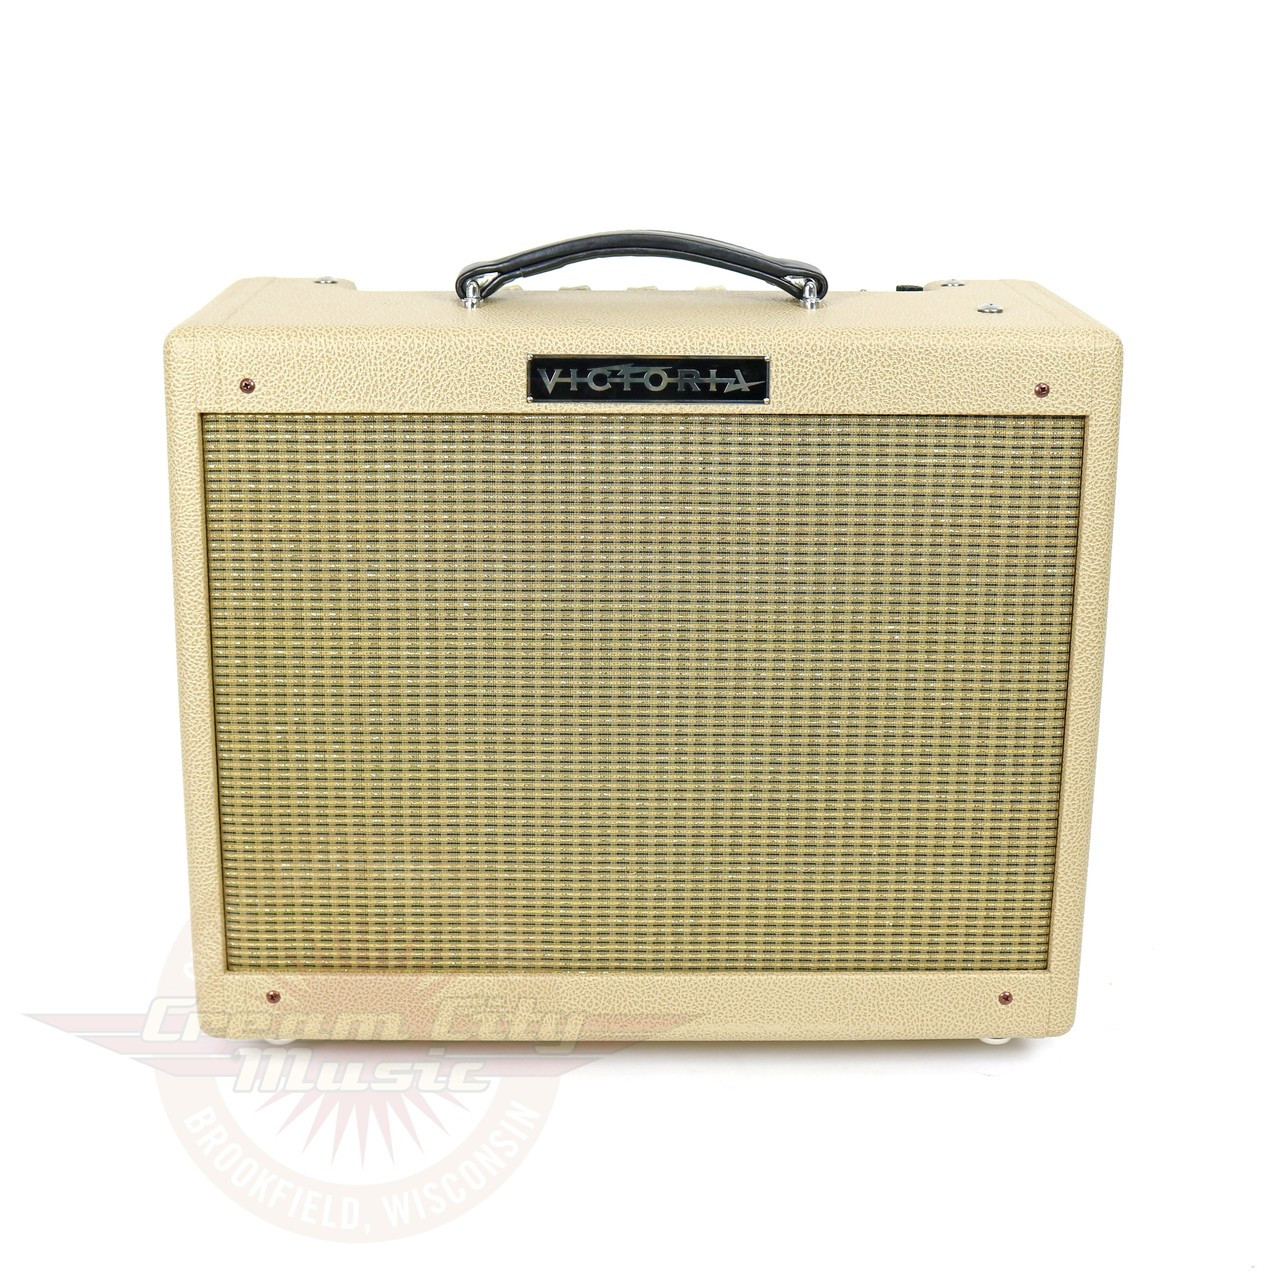 New Victoria Vicky Verb Jr 5w 1x12 Boutique Tube Combo Amp Cream The Configuration Is Classic Power Supply 5y3 Rectifier